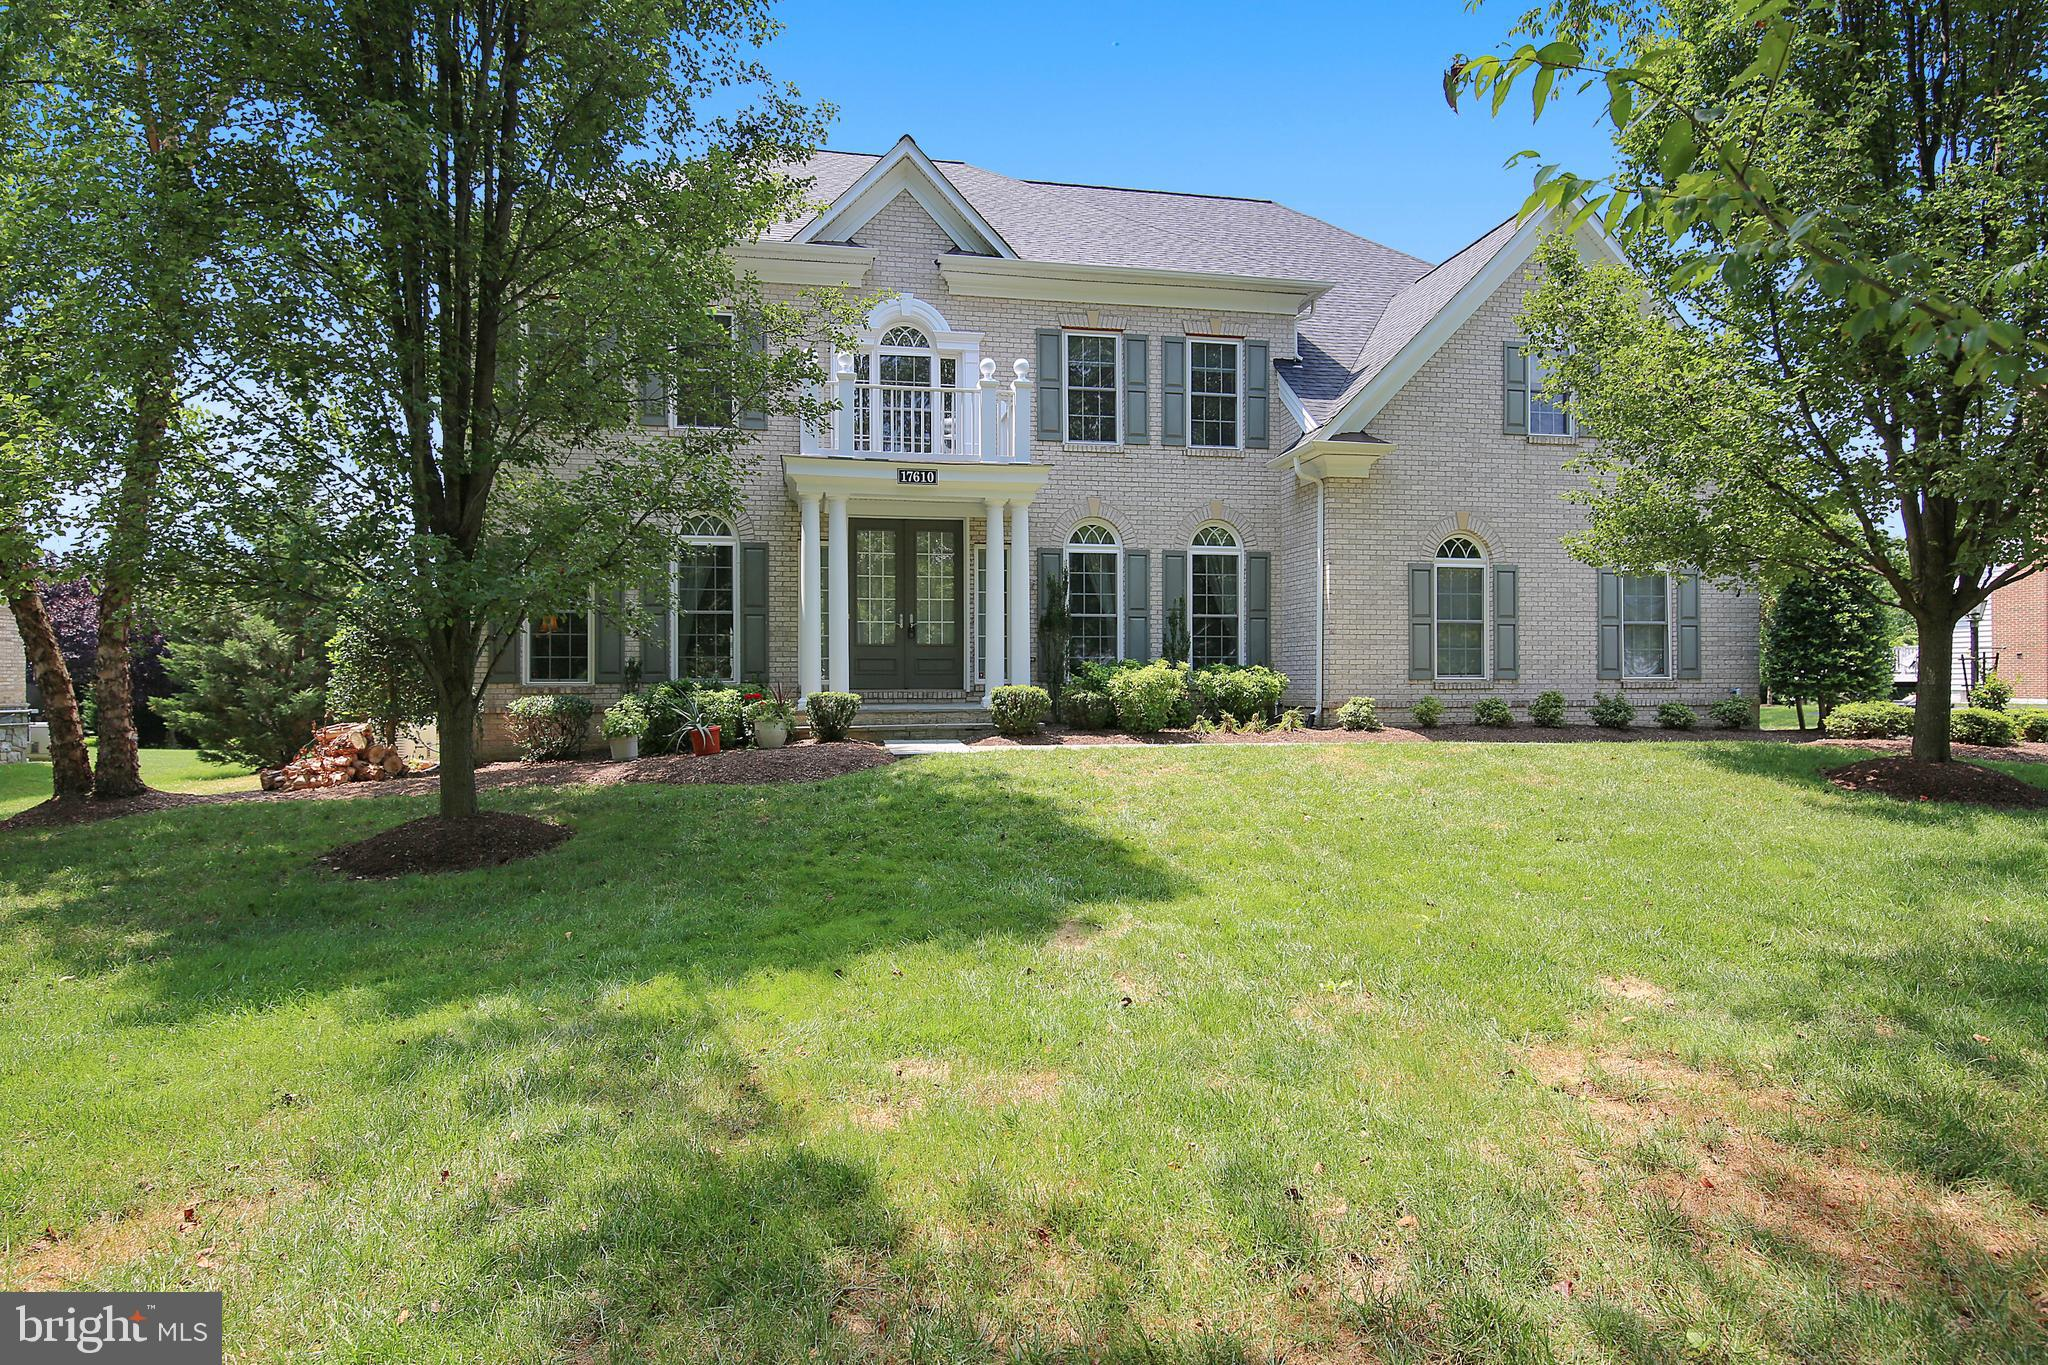 17610 AUBURN VILLAGE DRIVE, SANDY SPRING, MD 20860